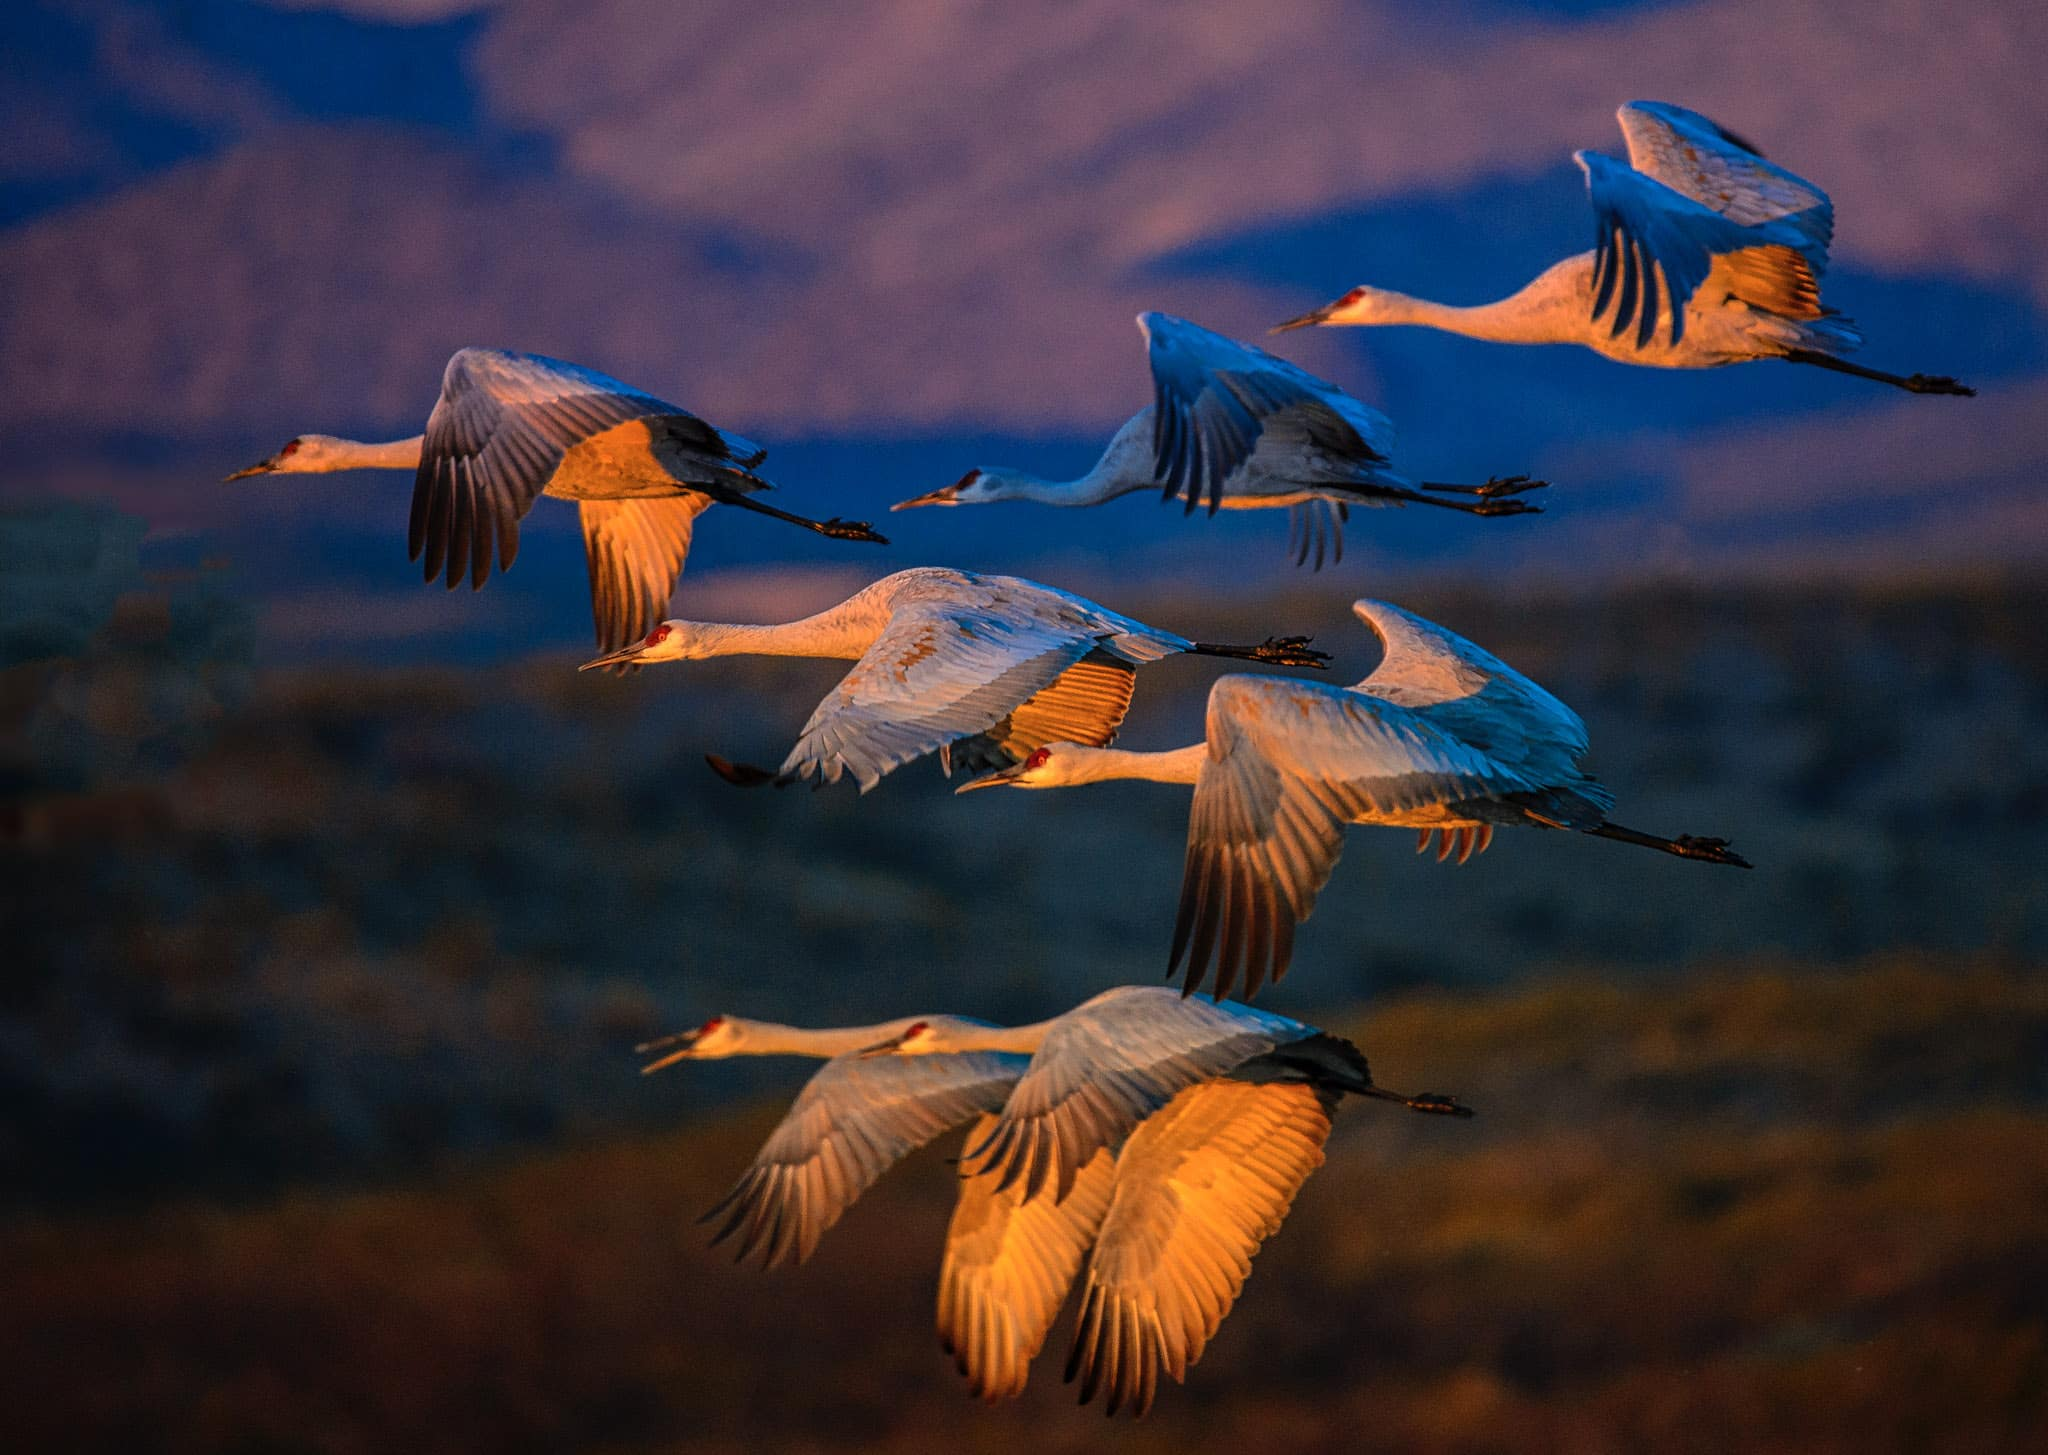 A group of Greater Sandhill Cranes have just taken off from the over-night pon to begin a long day of feeding in nearby corn fields in Bosque del Apache National Wildlife Refuge in New Mexico.